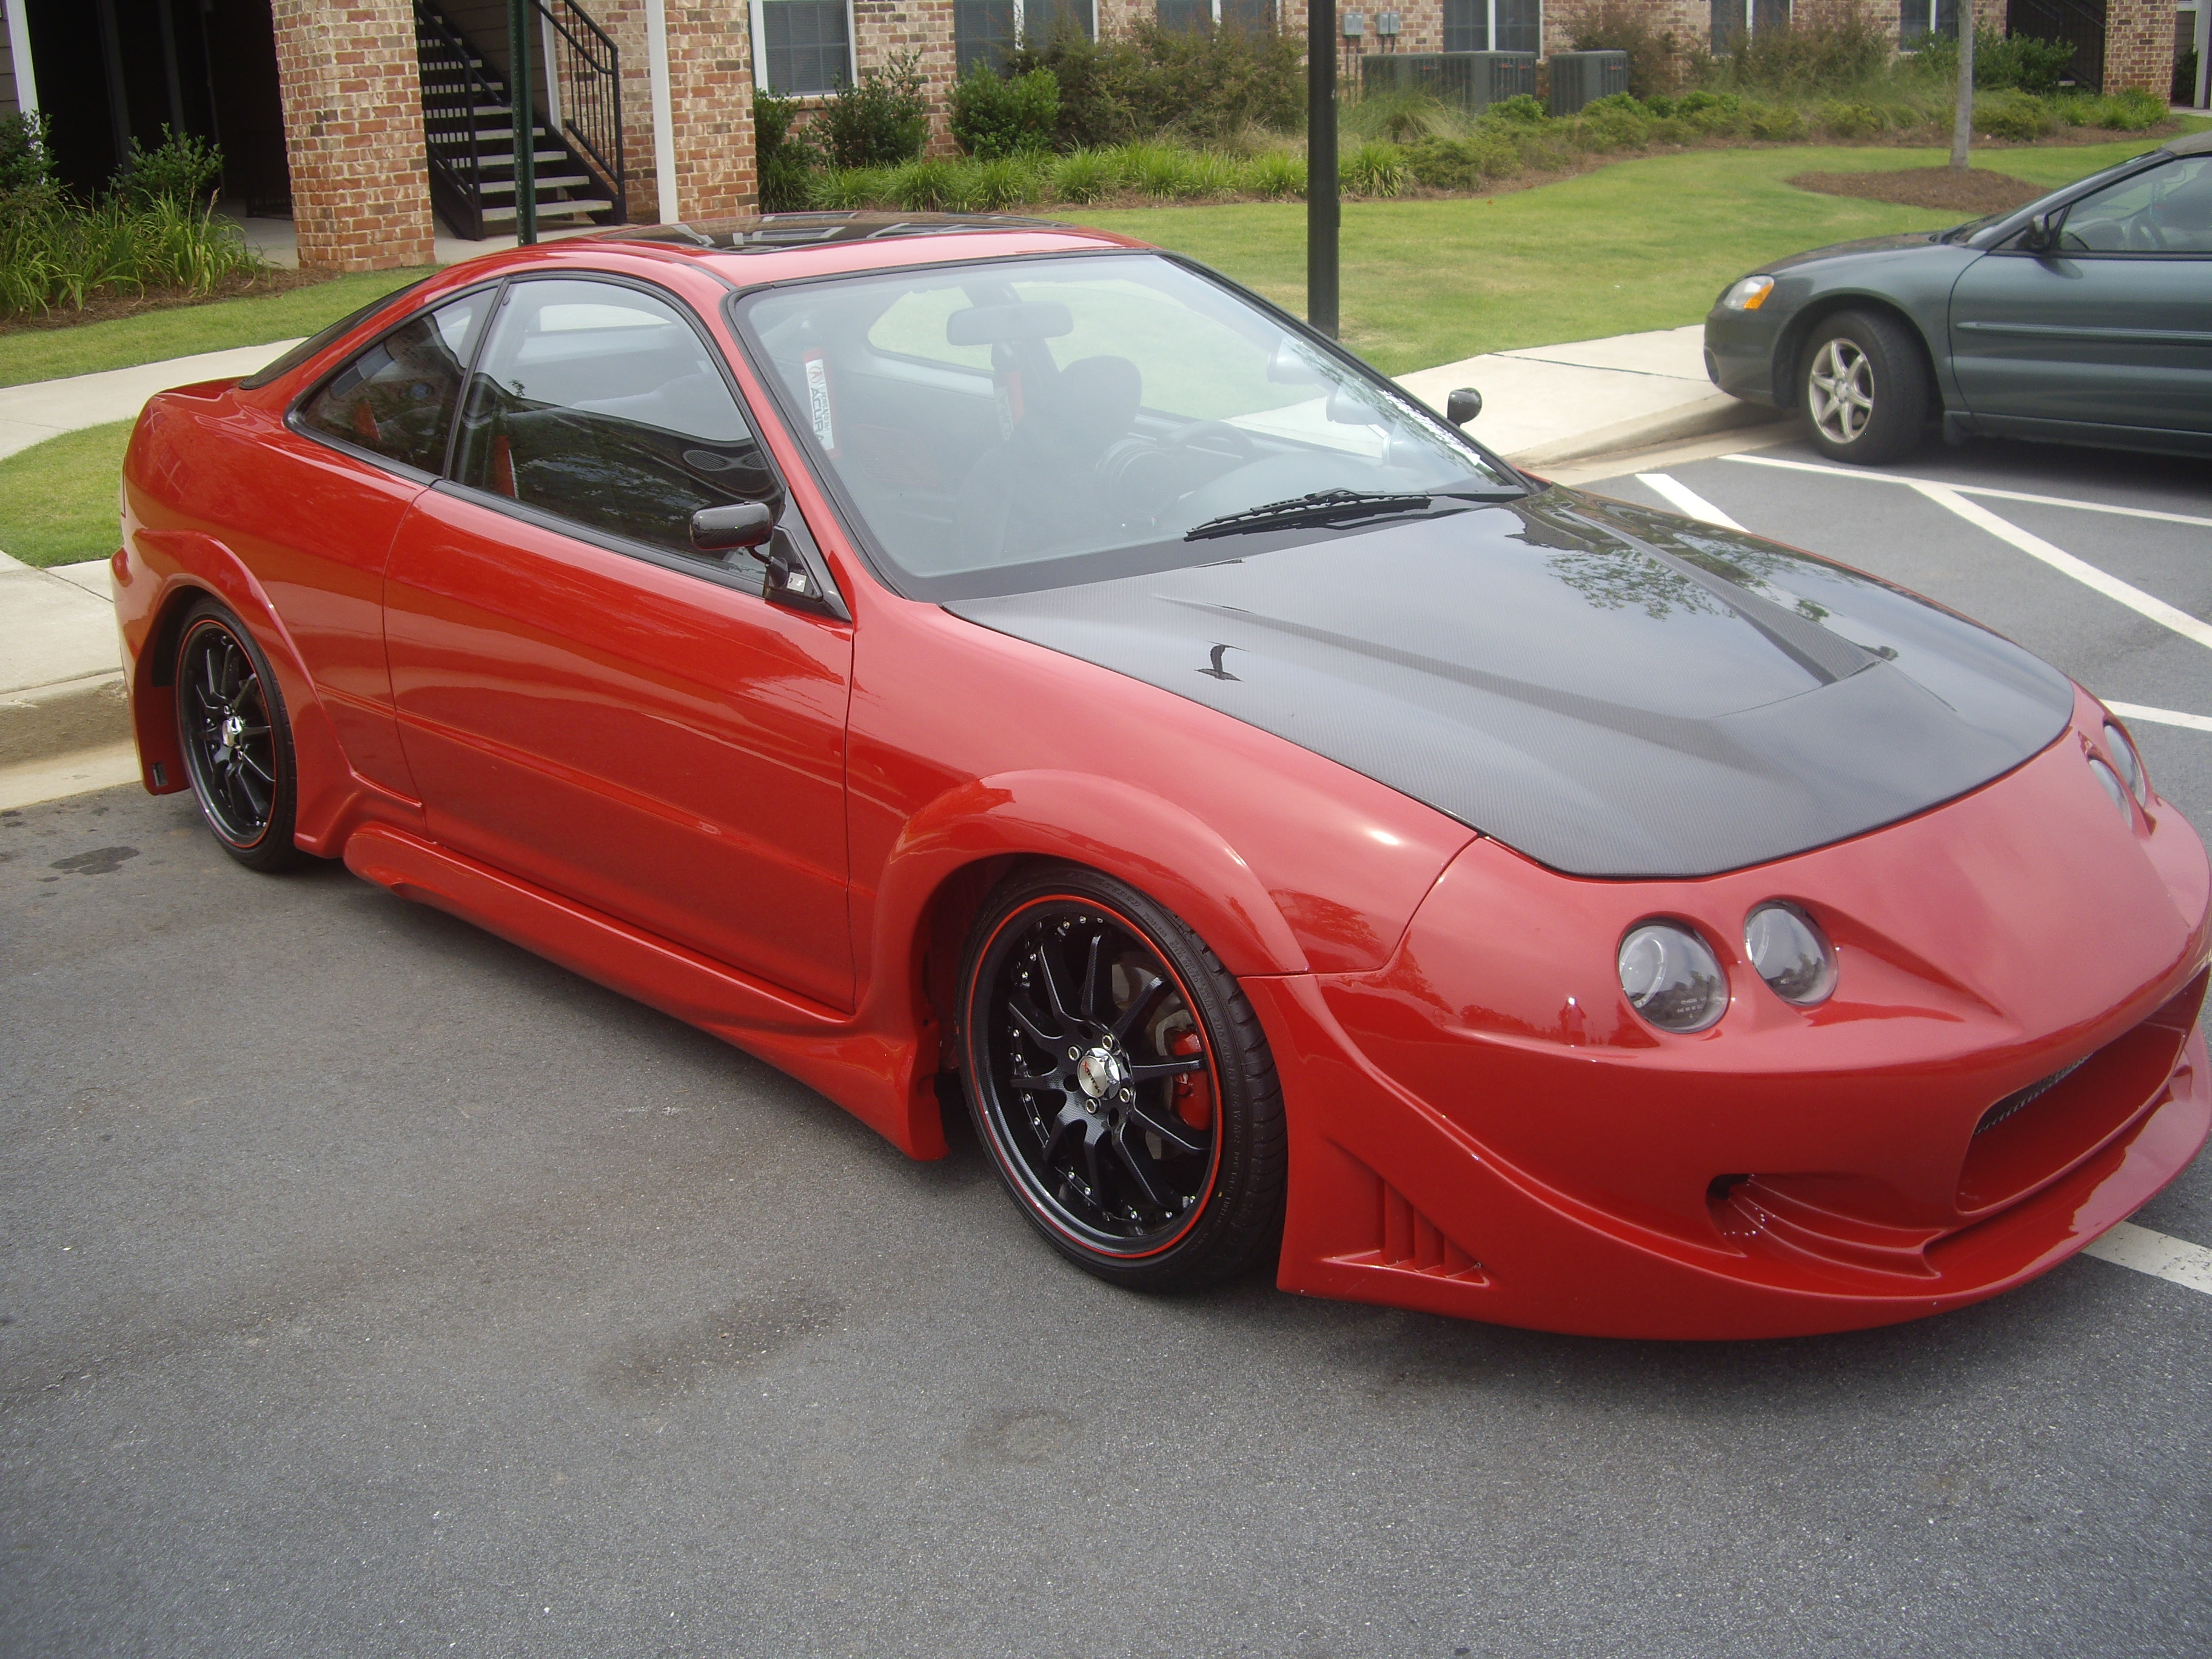 IcUlookinGS-R 1995 Acura Integra 11796963